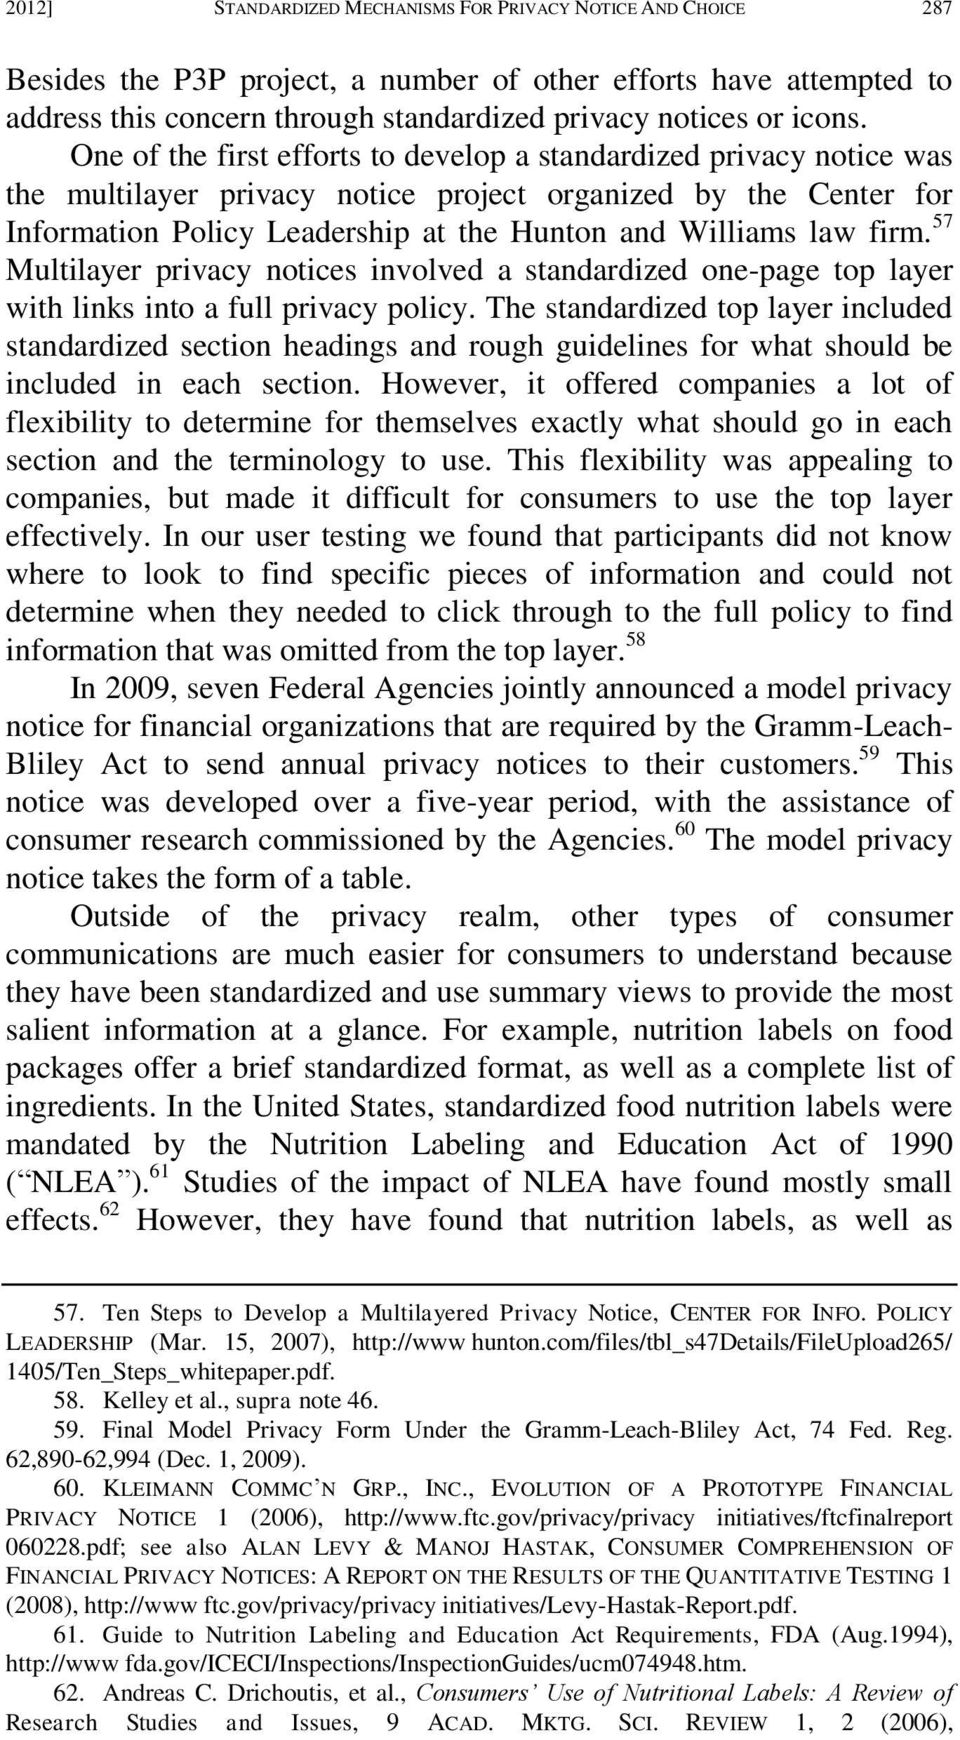 firm. 57 Multilayer privacy notices involved a standardized one-page top layer with links into a full privacy policy.